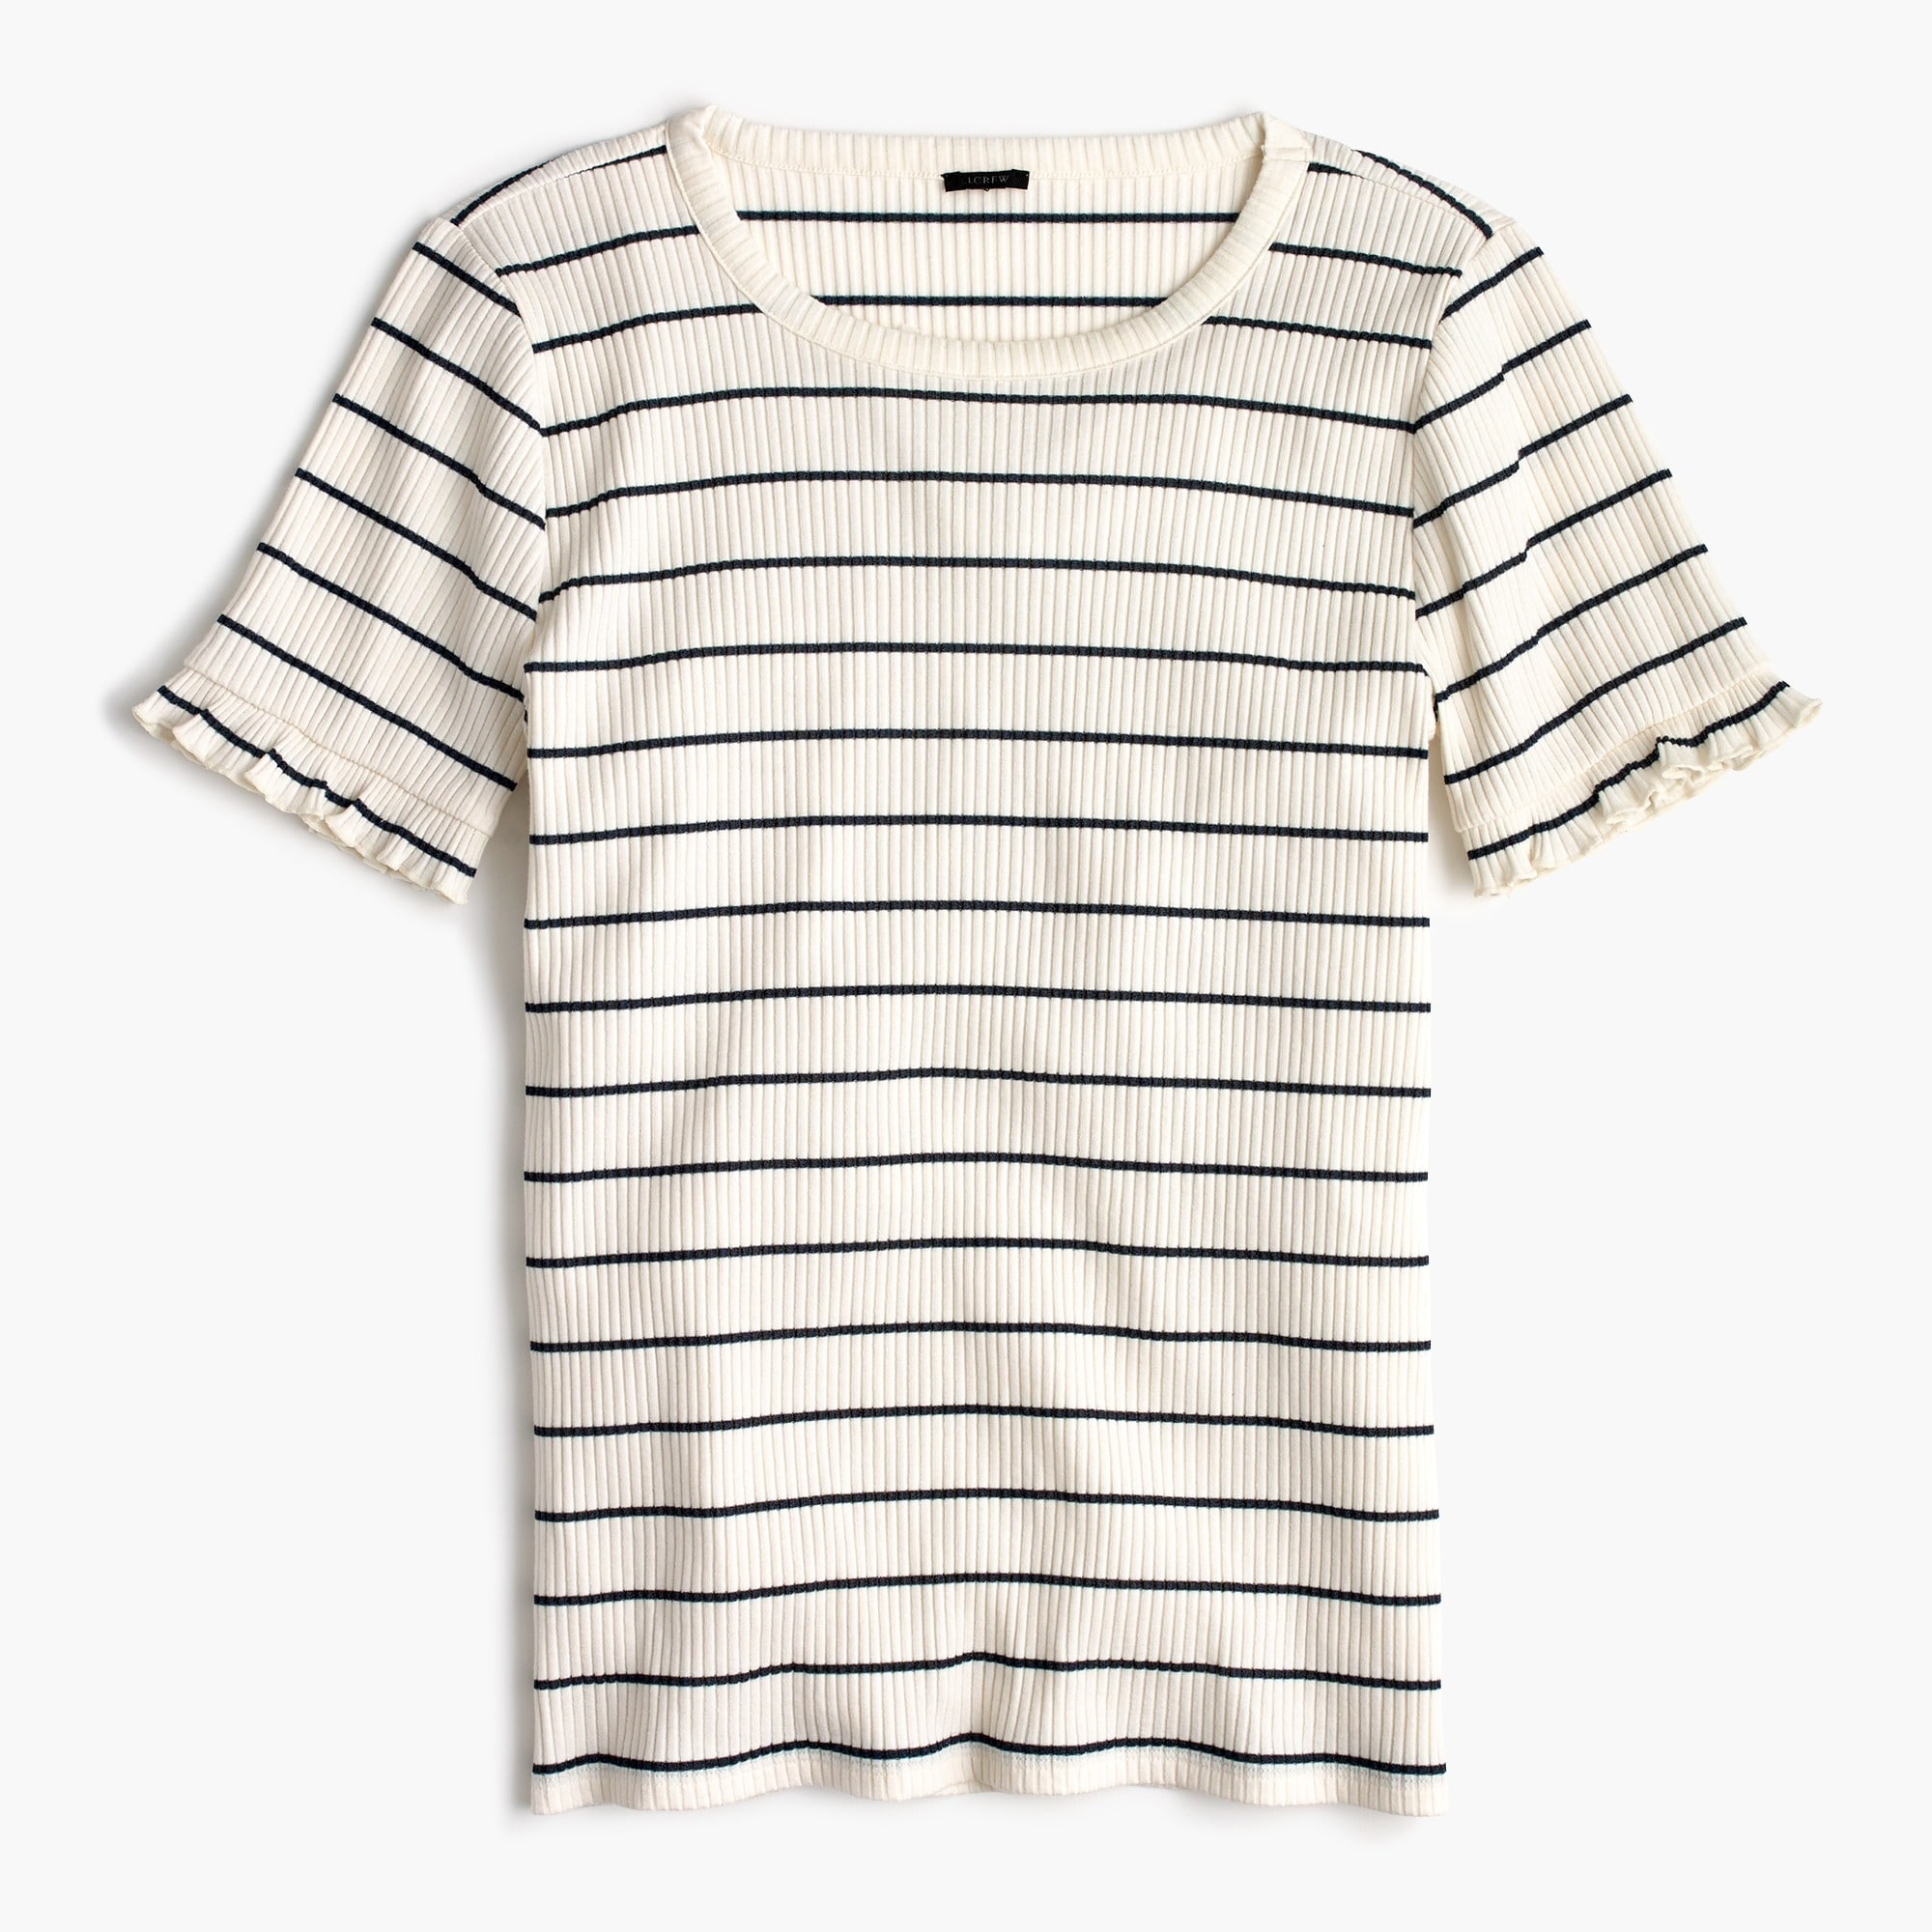 ribbed striped t-shirt with ruffled sleeves : women short sleeve